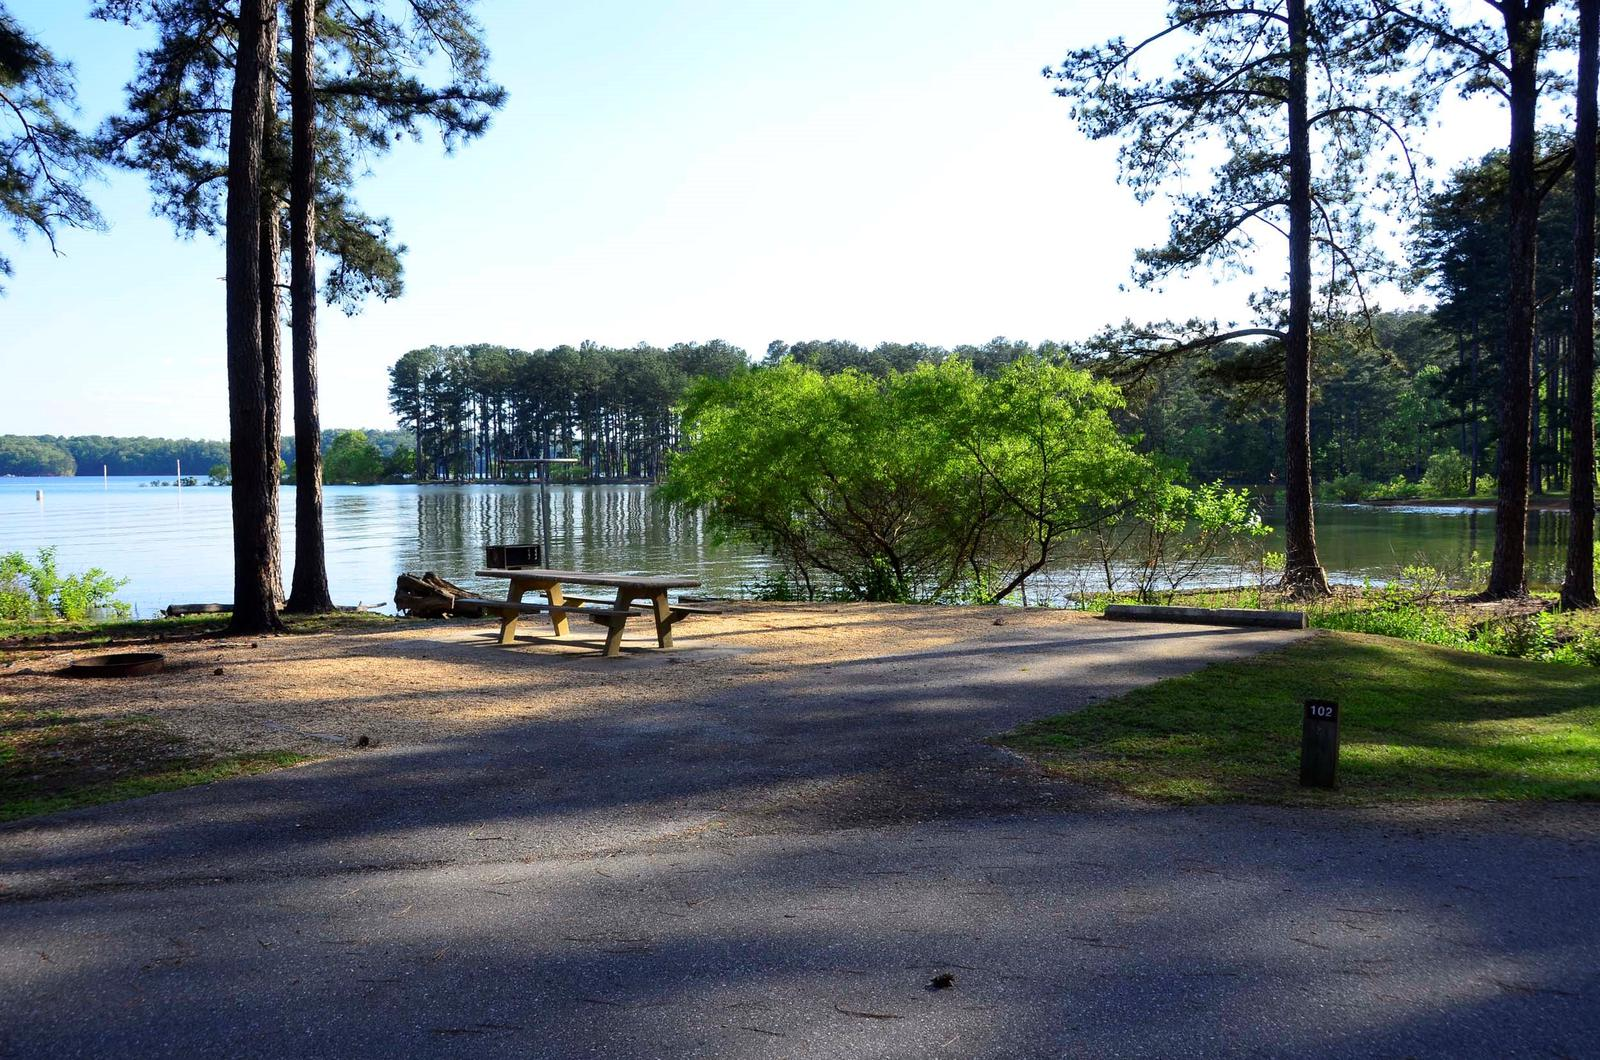 Sweetwater Campground Site 102